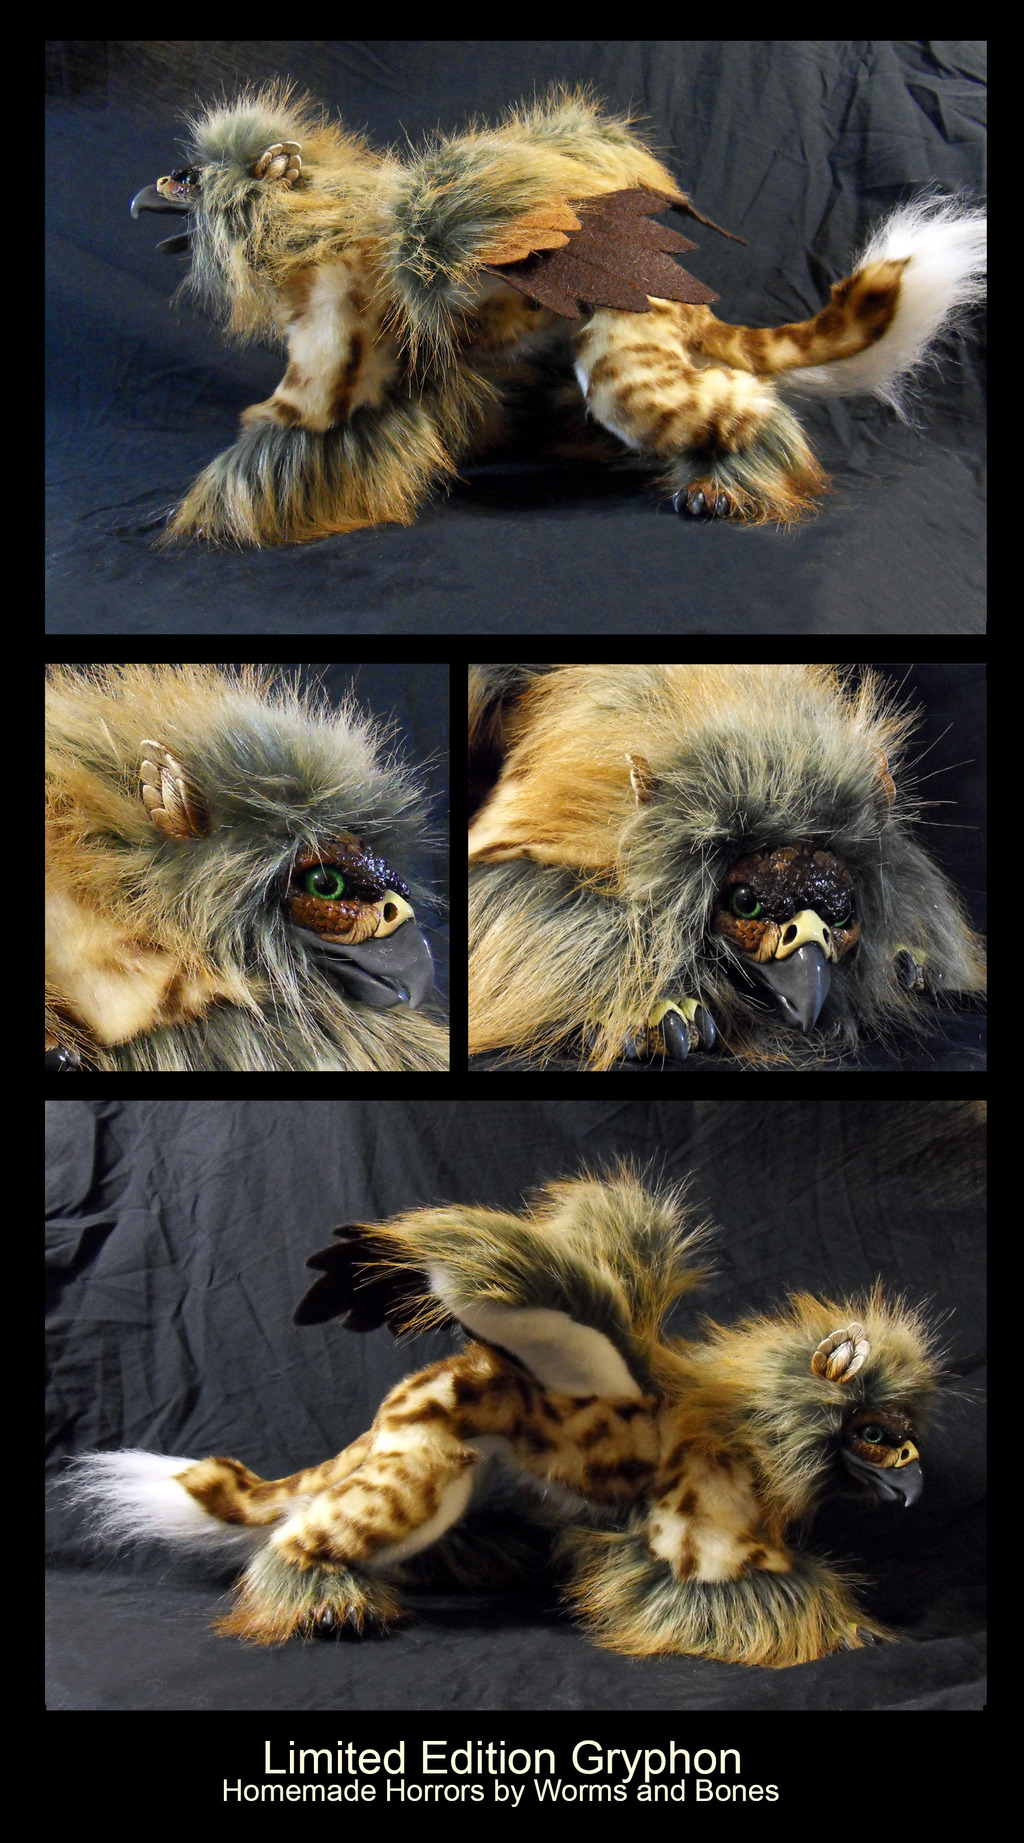 Limited Edition Gryphon